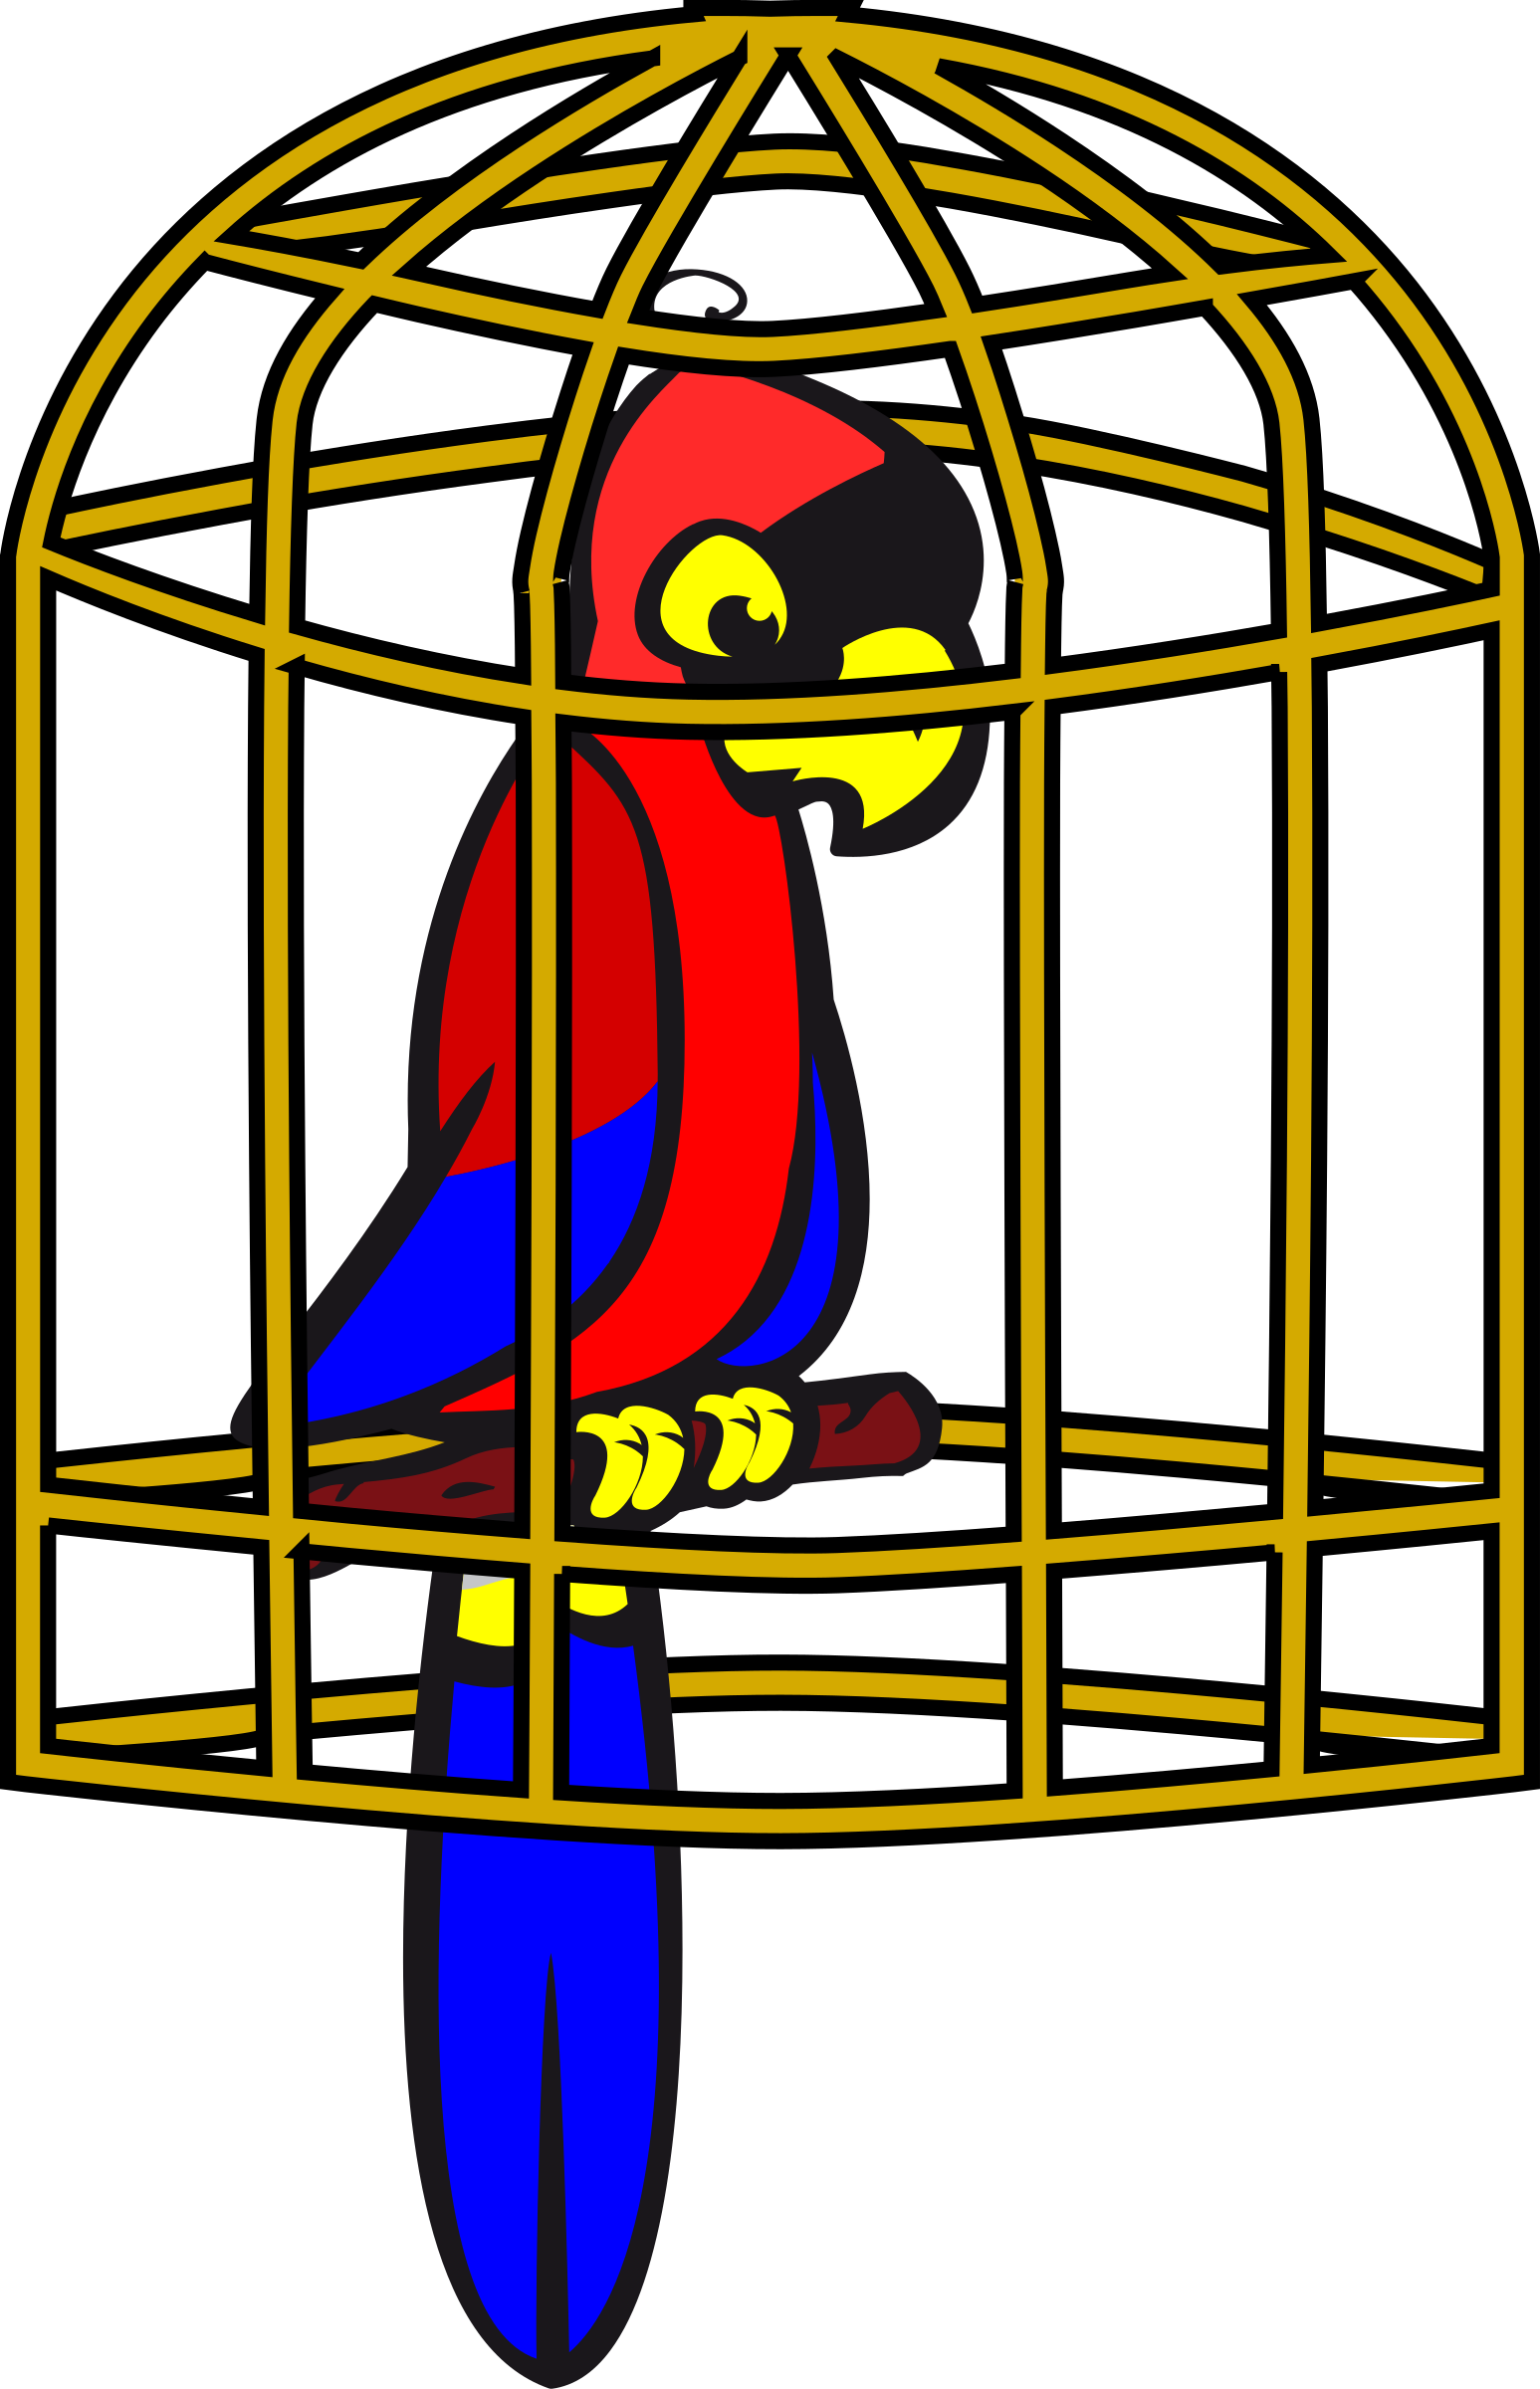 Parrot clipart cage Drawings clipart clipart Cage clipart